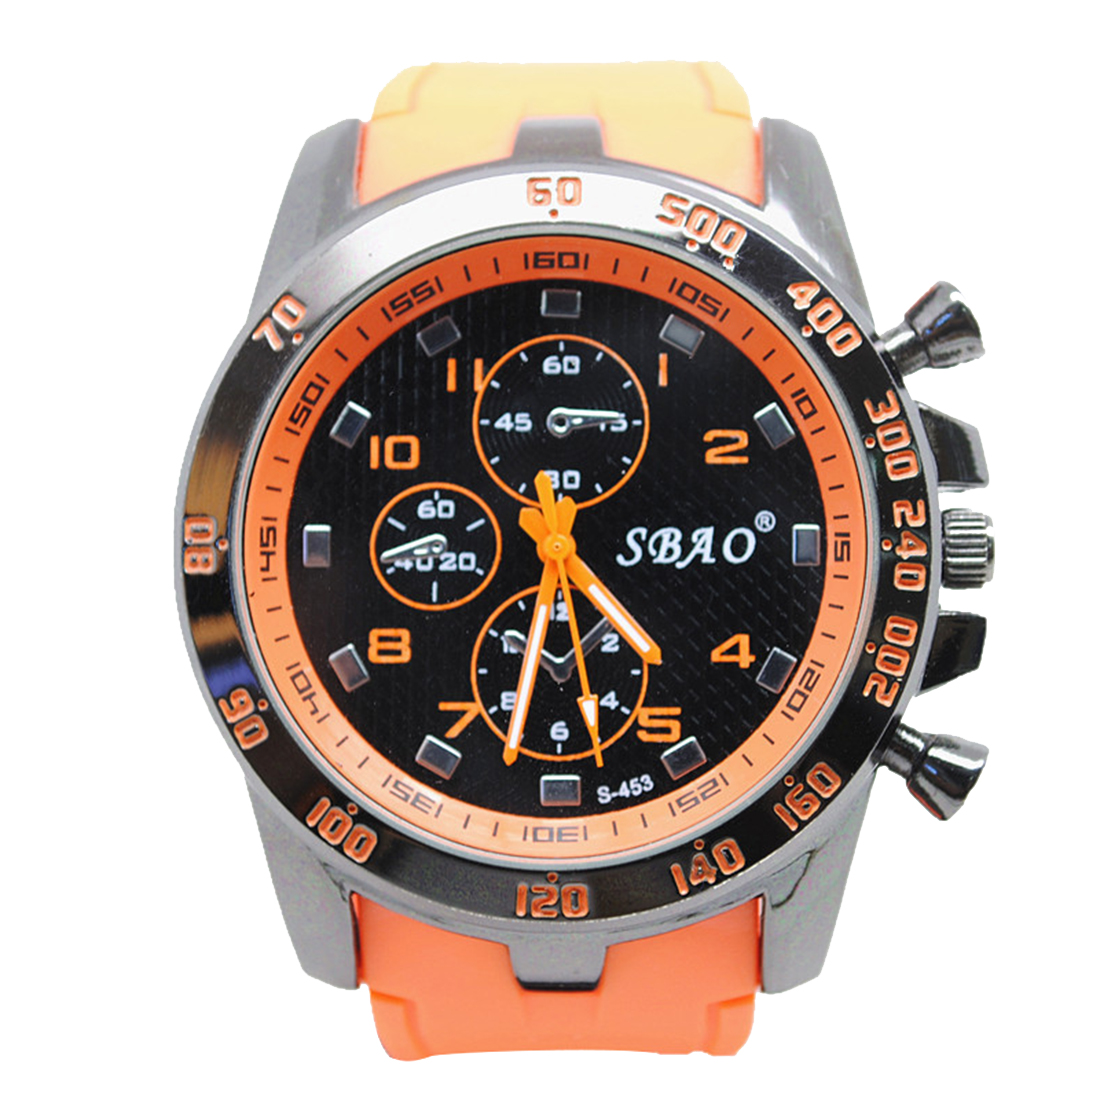 SBAO Stainless Steel Luxury Sport Analog Quartz Modern Men Fashion Wrist Watch Orange superior new fashion men s luxury concept stainless steel analog quartz sport wrist watch wholesale free shipping